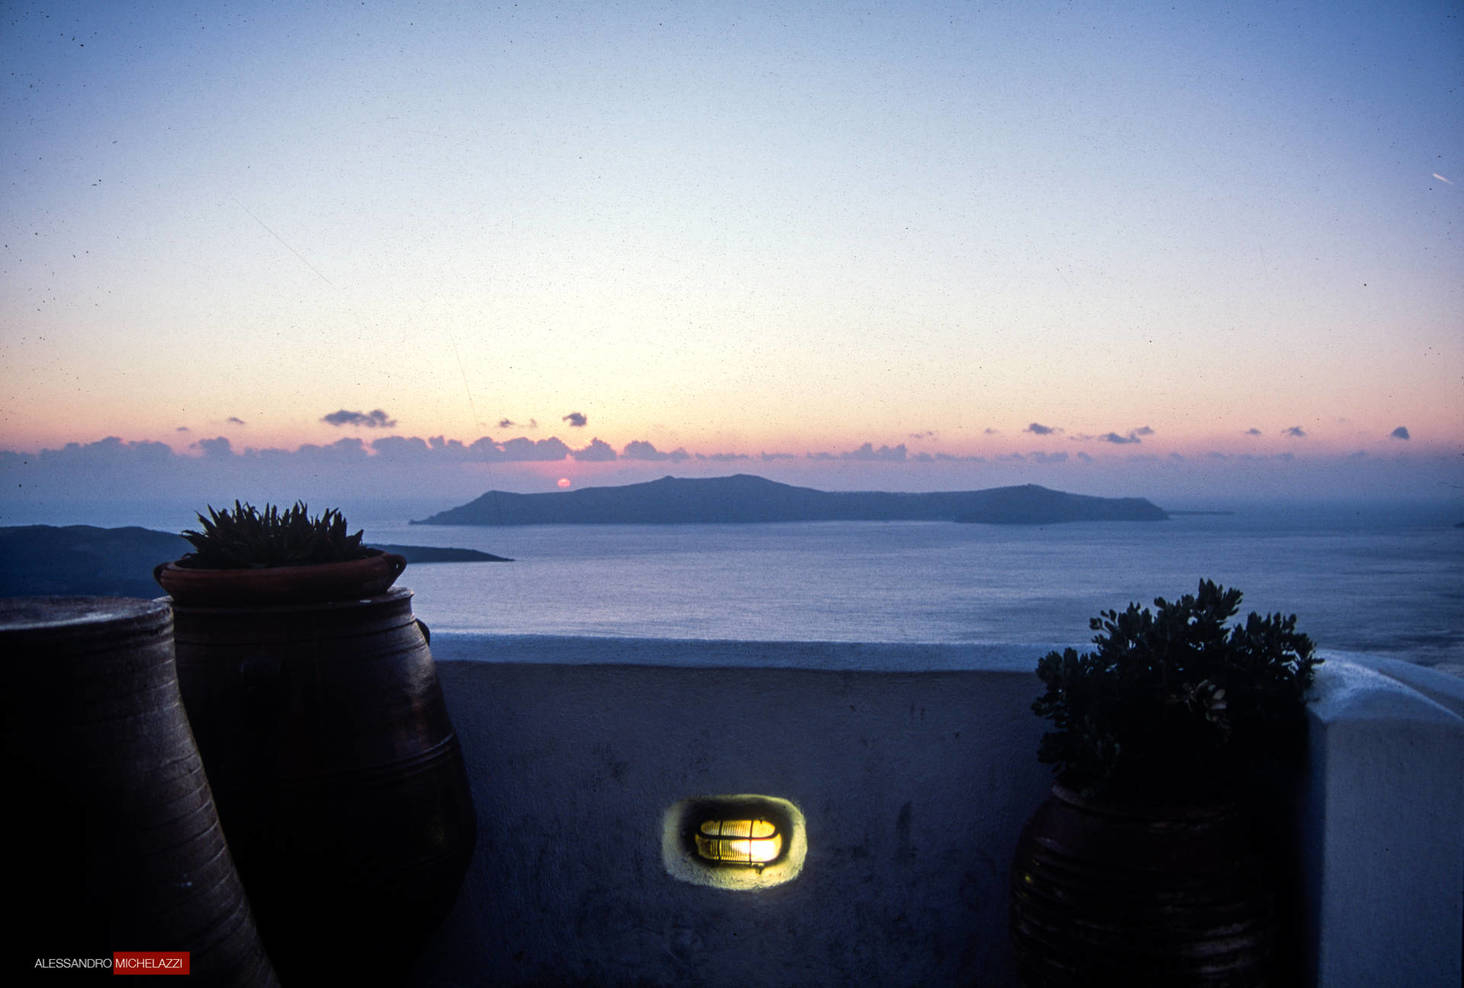 Greece 2003, the legendary analogue colors taken with Fujifilm Velvia Slide.